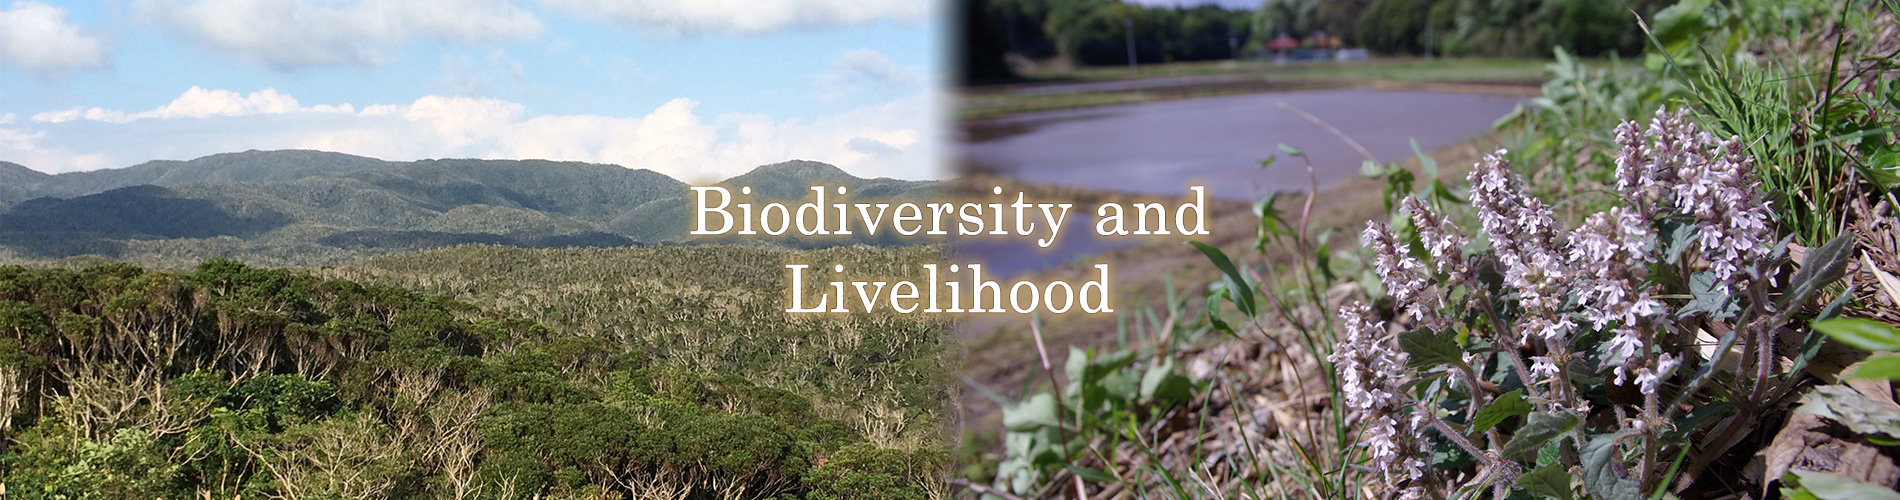 Biodiversity and Livelihood